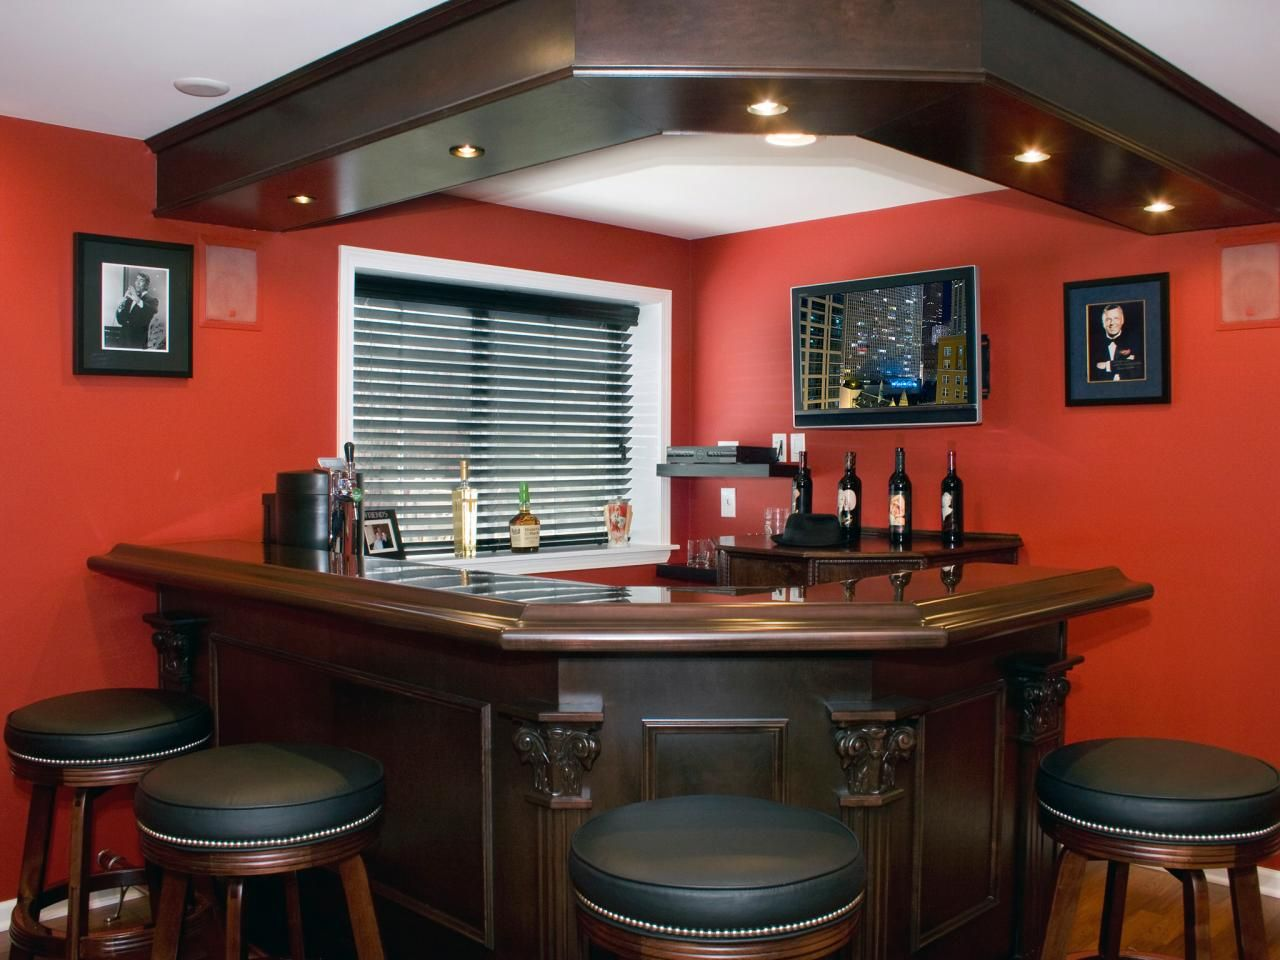 home bar ideas: 89 design options | hgtv, basements and bar